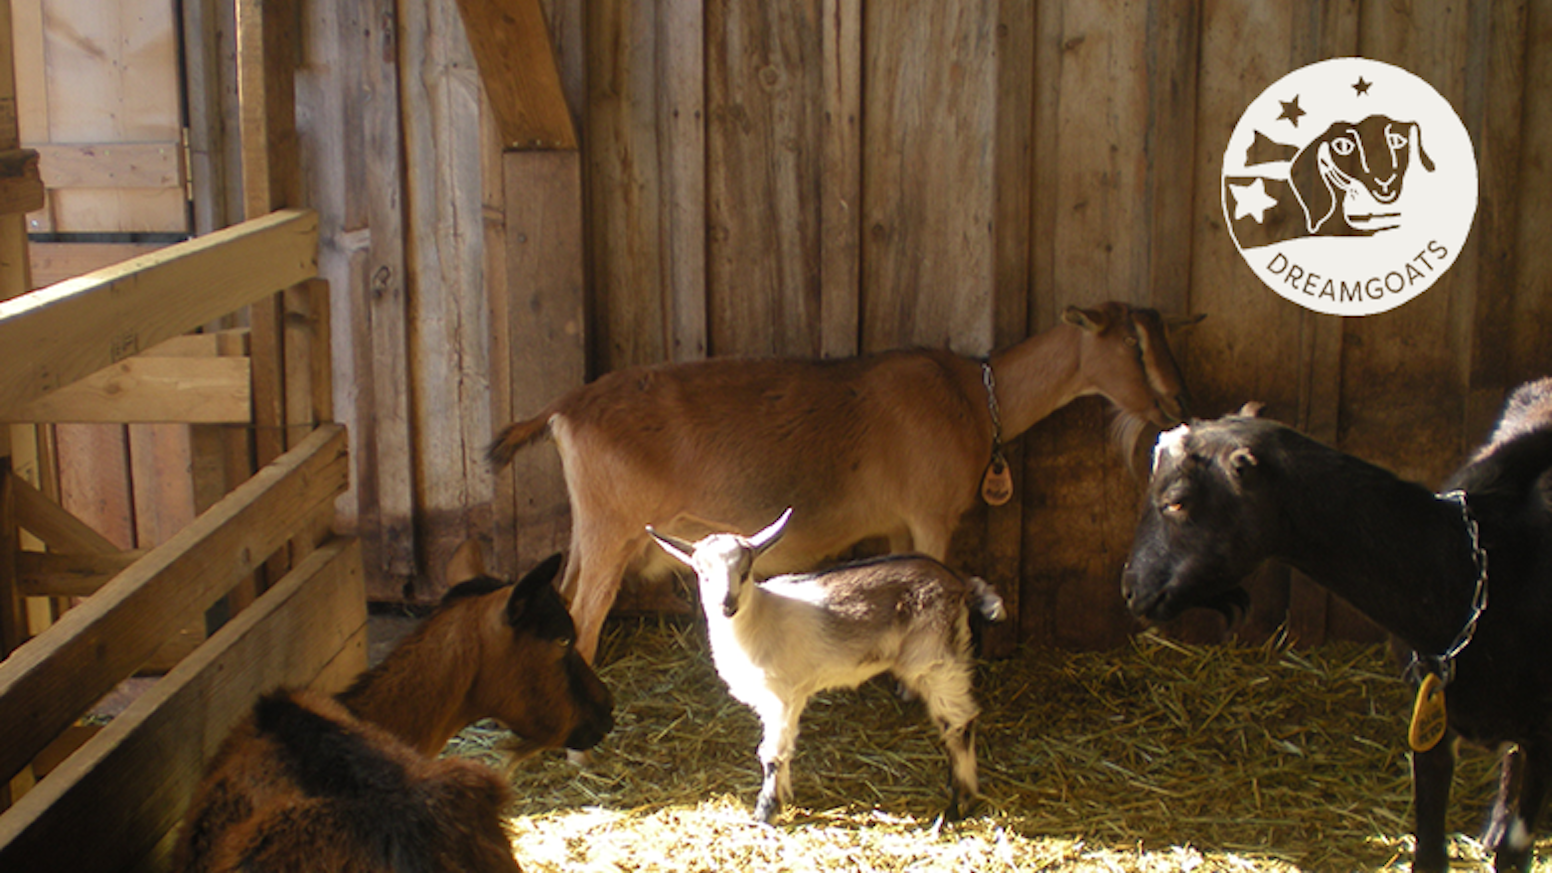 Help raise a herd of organic dairy goats & plant the seeds of a bigger dream!